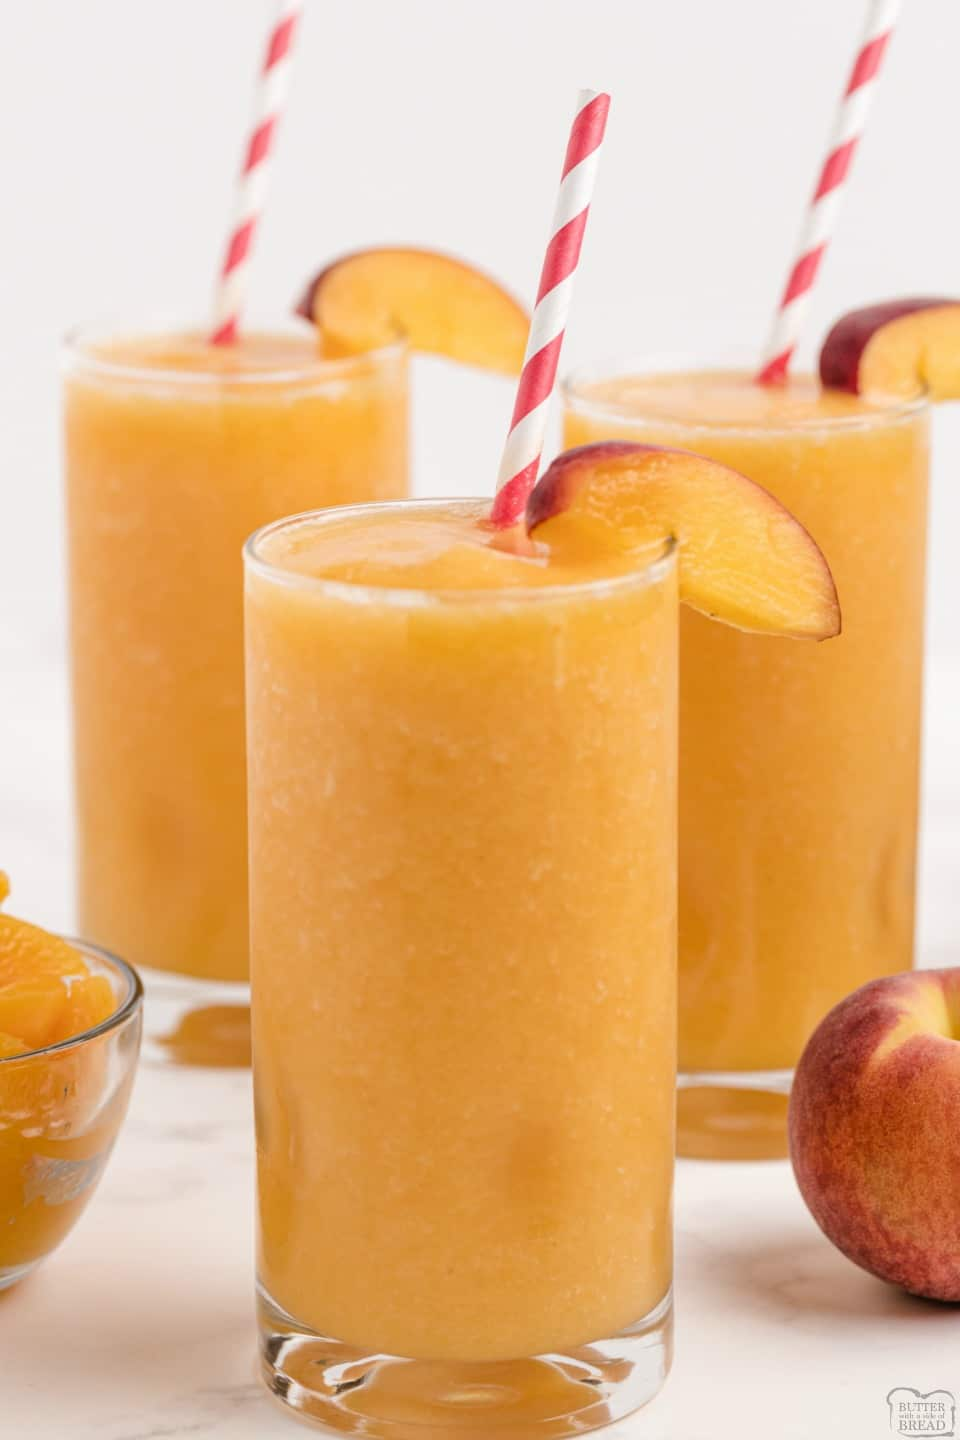 Peach Homemade Slurpee